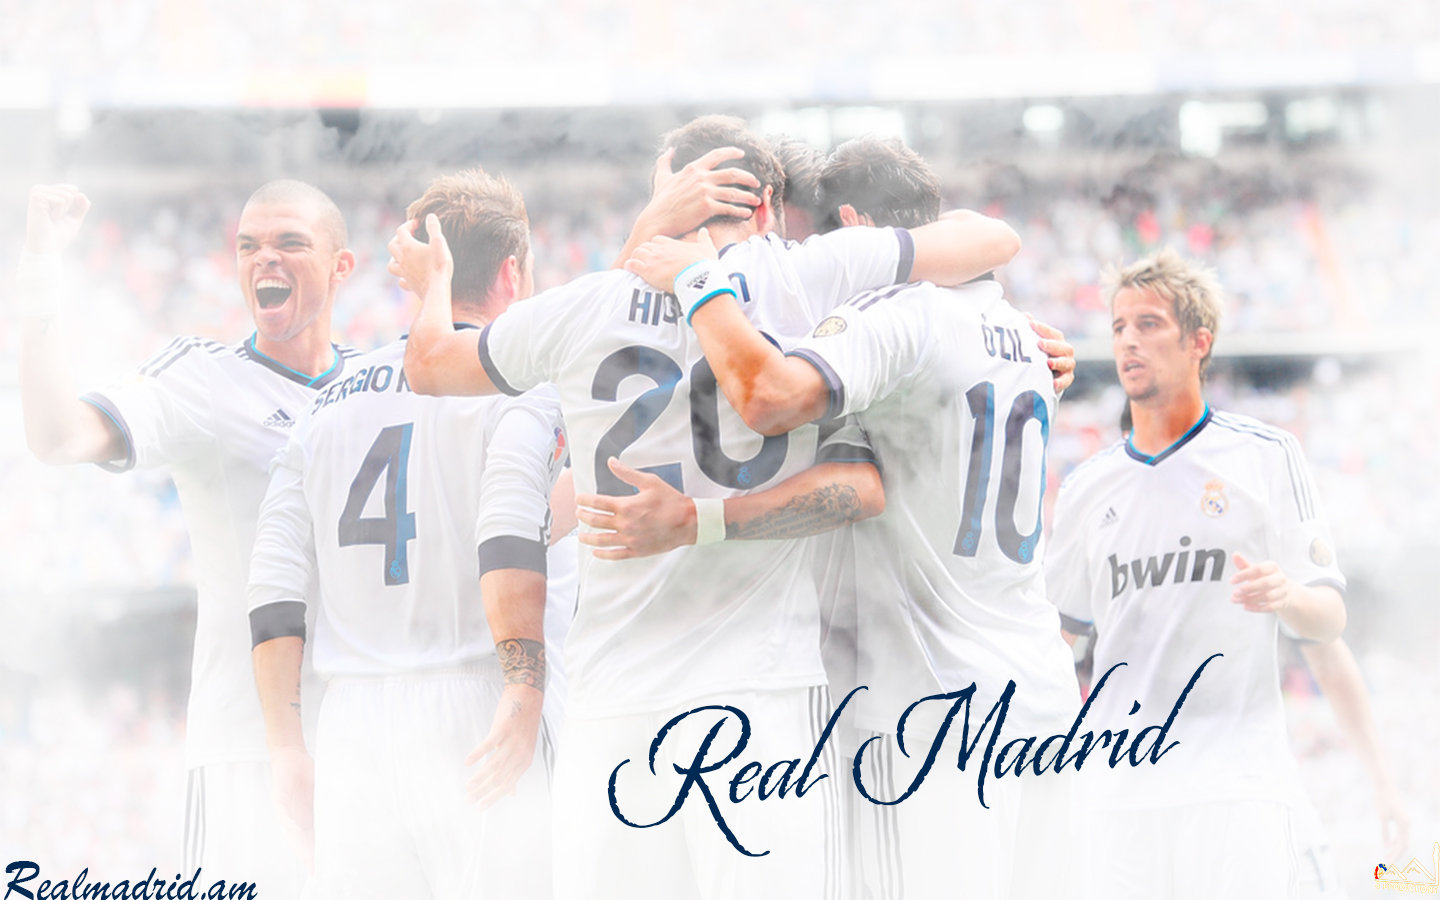 Real+Madrid+2013+Wallpaper+HD+2.jpg